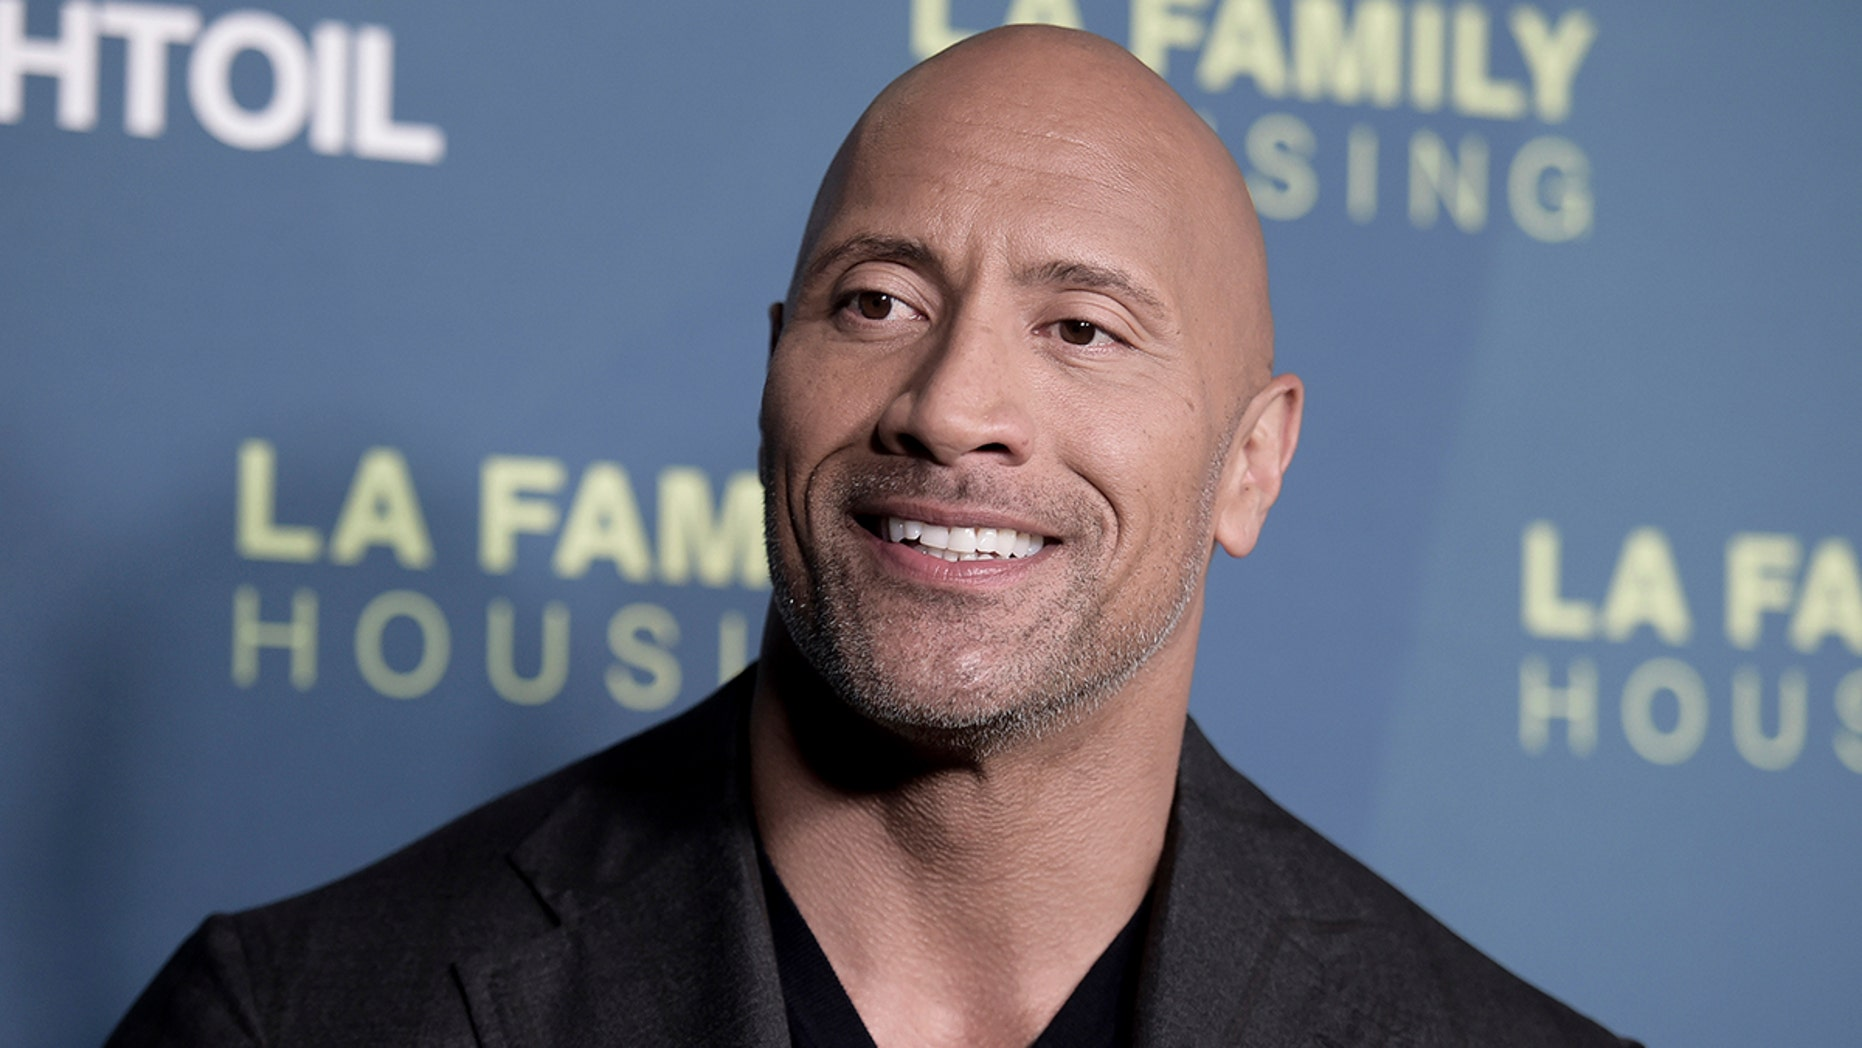 Dwayne Johnson attends the 2018 LA Family Housing Awards at The Lot Studios on Thursday, April 5, 2018, in West Hollywood, Calif. (Photo by Richard Shotwell/Invision/AP)